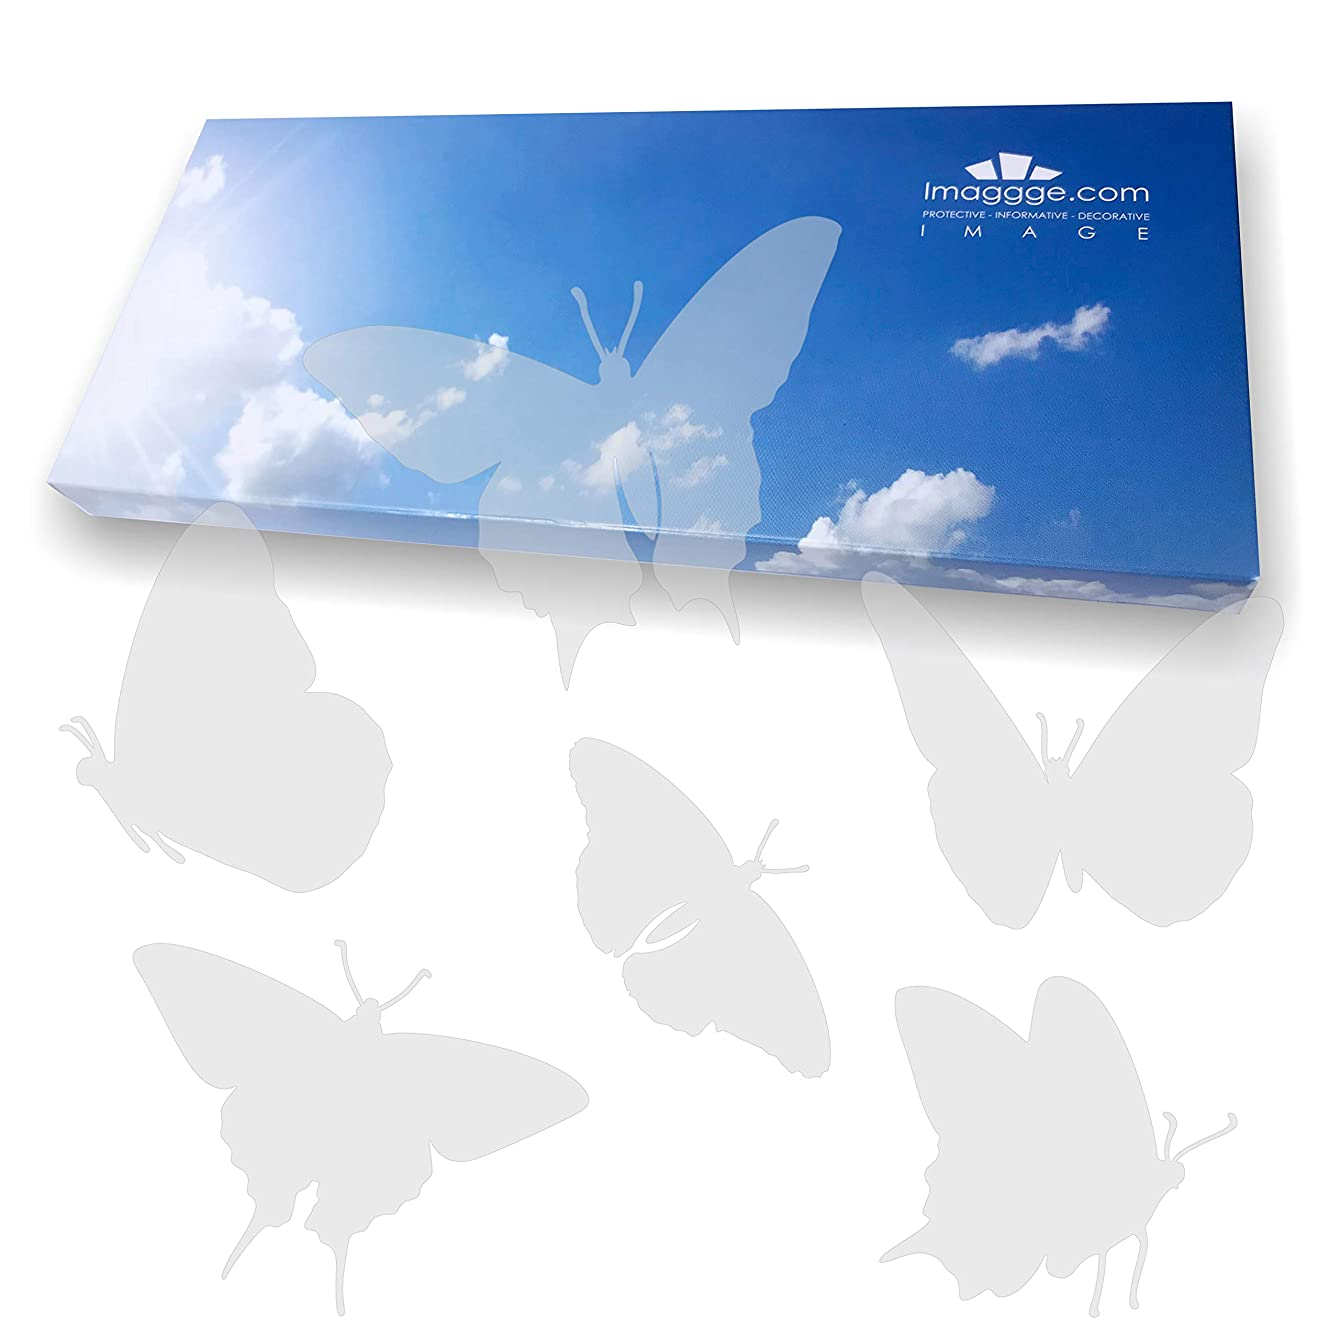 imaggge.com Window Alert - Anti-Collision Decals to Prevent People and Bird Strikes on Window Glass - Set of 18 Butterflies Stickers - Color: Translucent Dusted